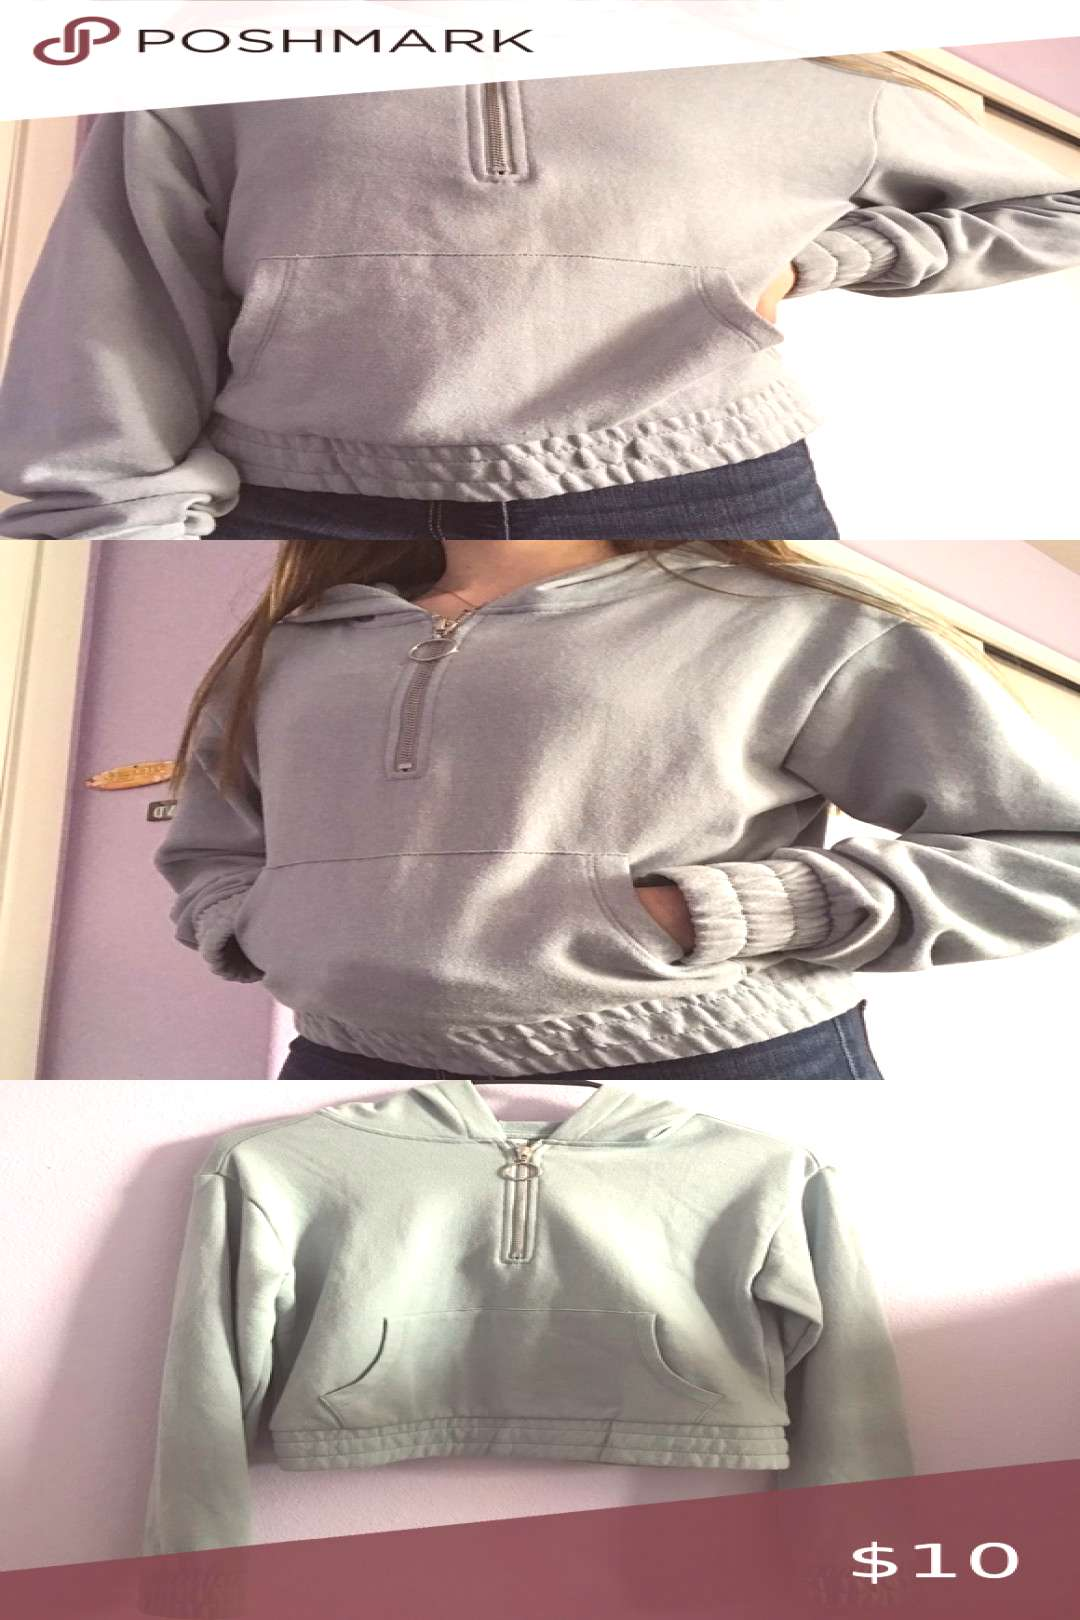 TILLYS quarter zip sweatshirt perfect condition, worn once. cuffed bottom and sleeves. light weight